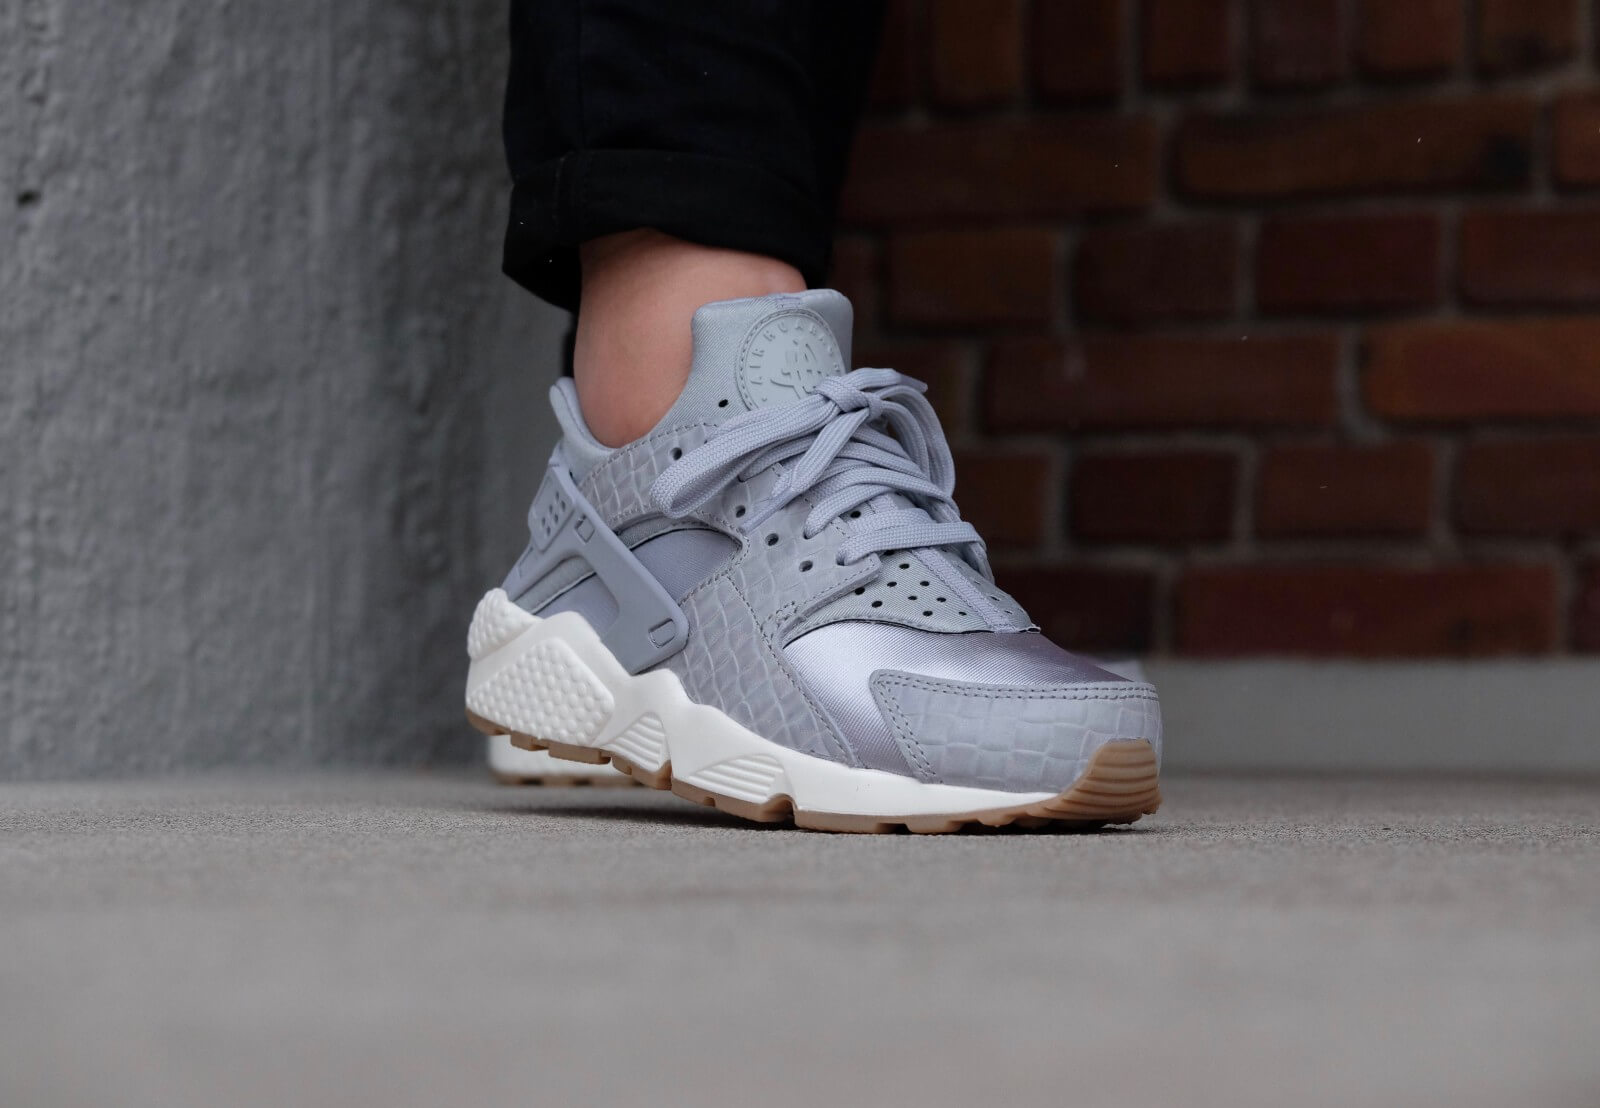 91a6a910dc49 ... shopping nike wmns air huarache run prm wolf grey wolf grey sail gum  med brown ec385